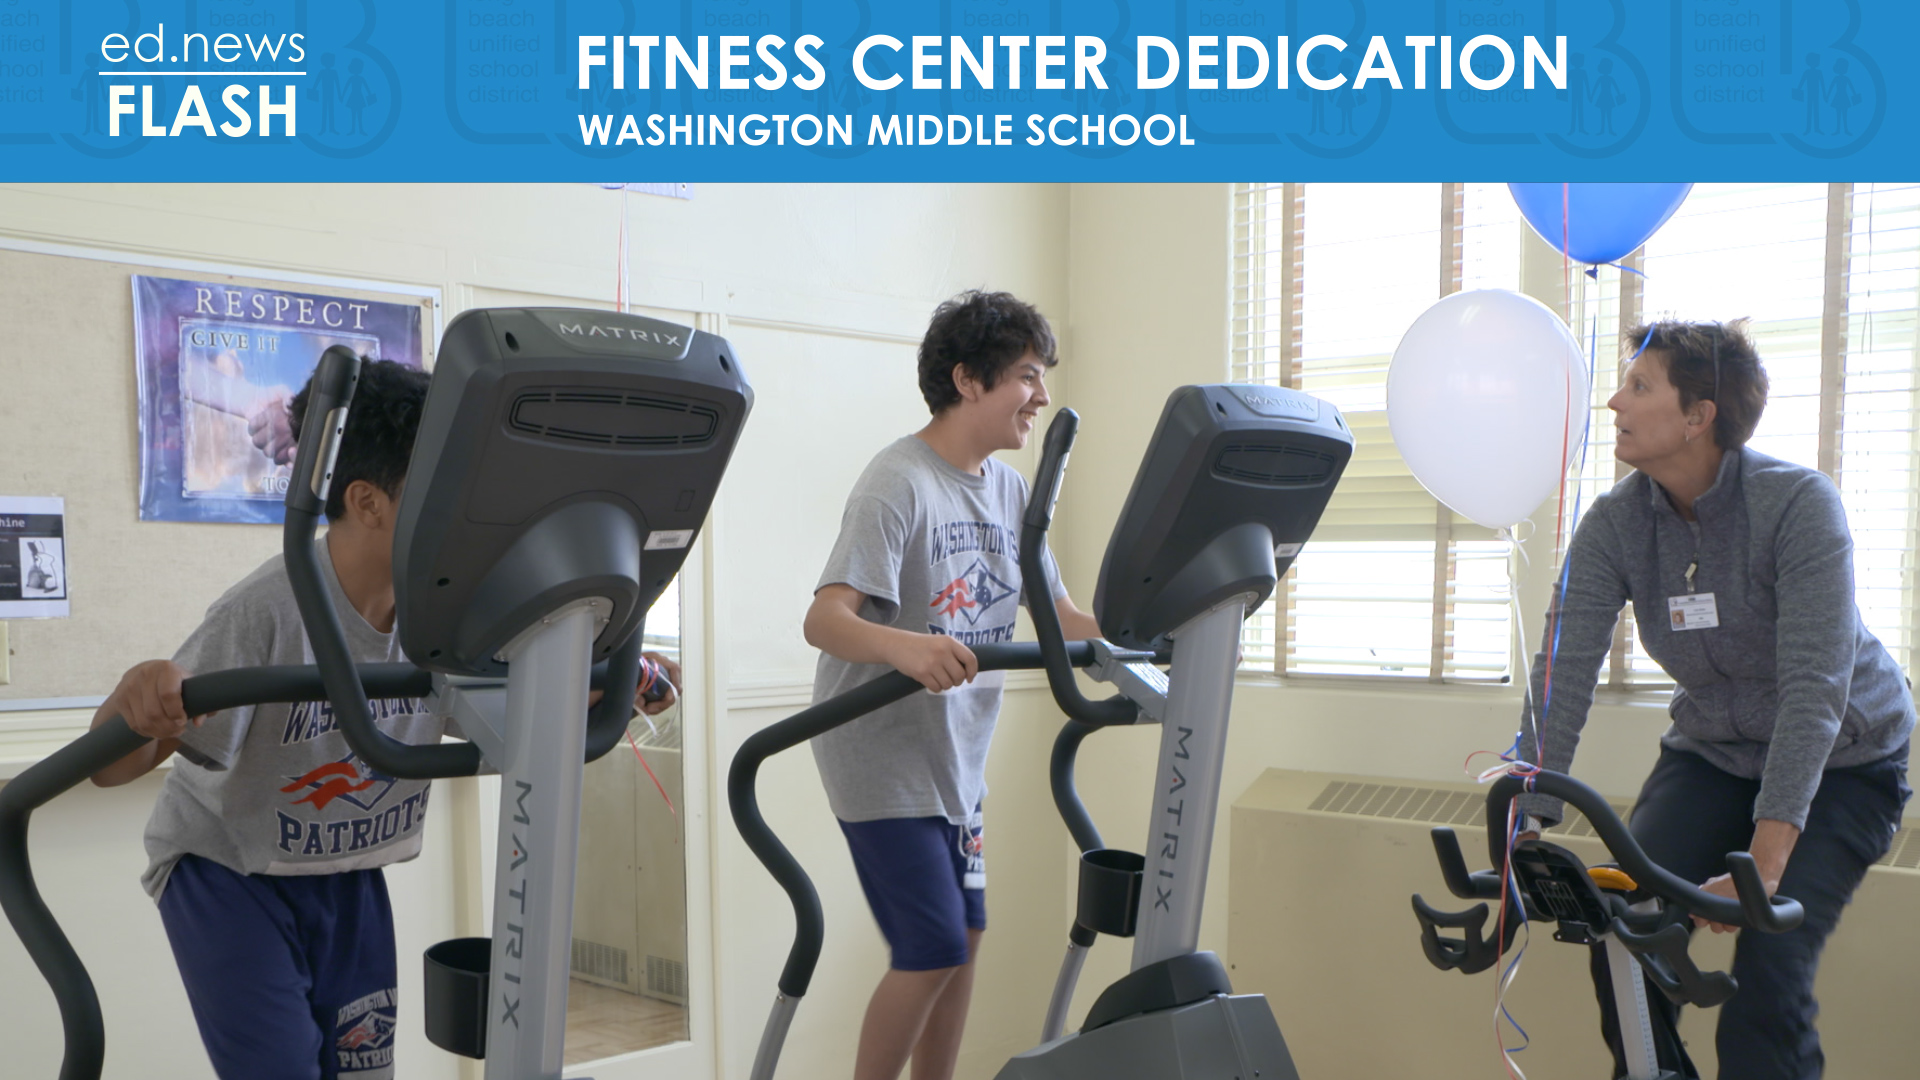 ed.news Flash - Washington Fitness Center Dedication - Video